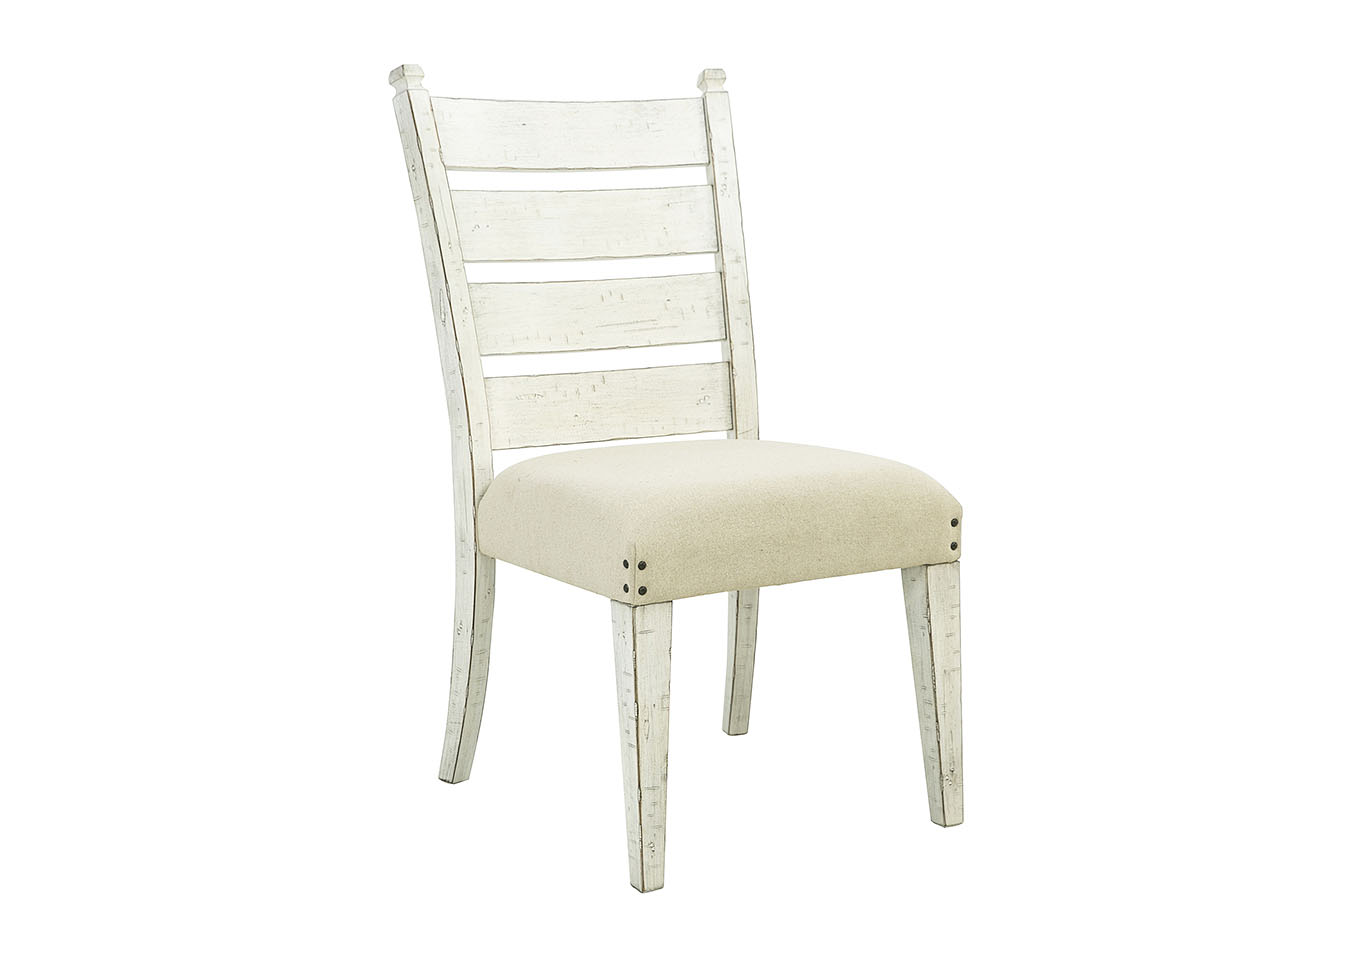 COMING HOME GATHERING SIDE CHAIR,KLAUSSNER